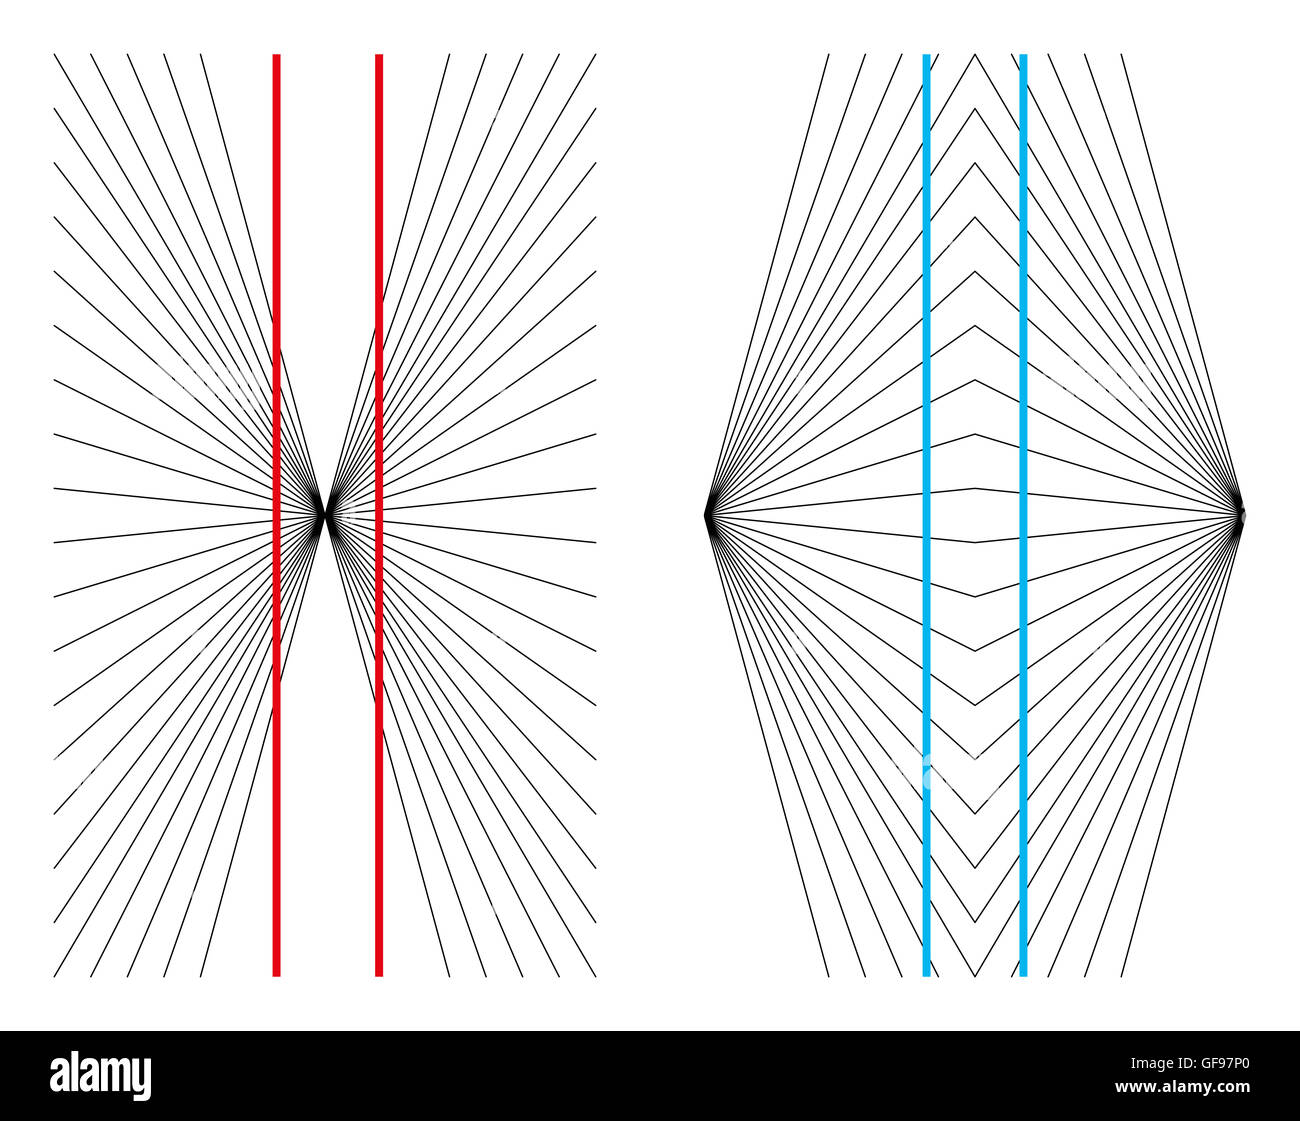 Hering and Wundt geometrical optical illusions. - Stock Image